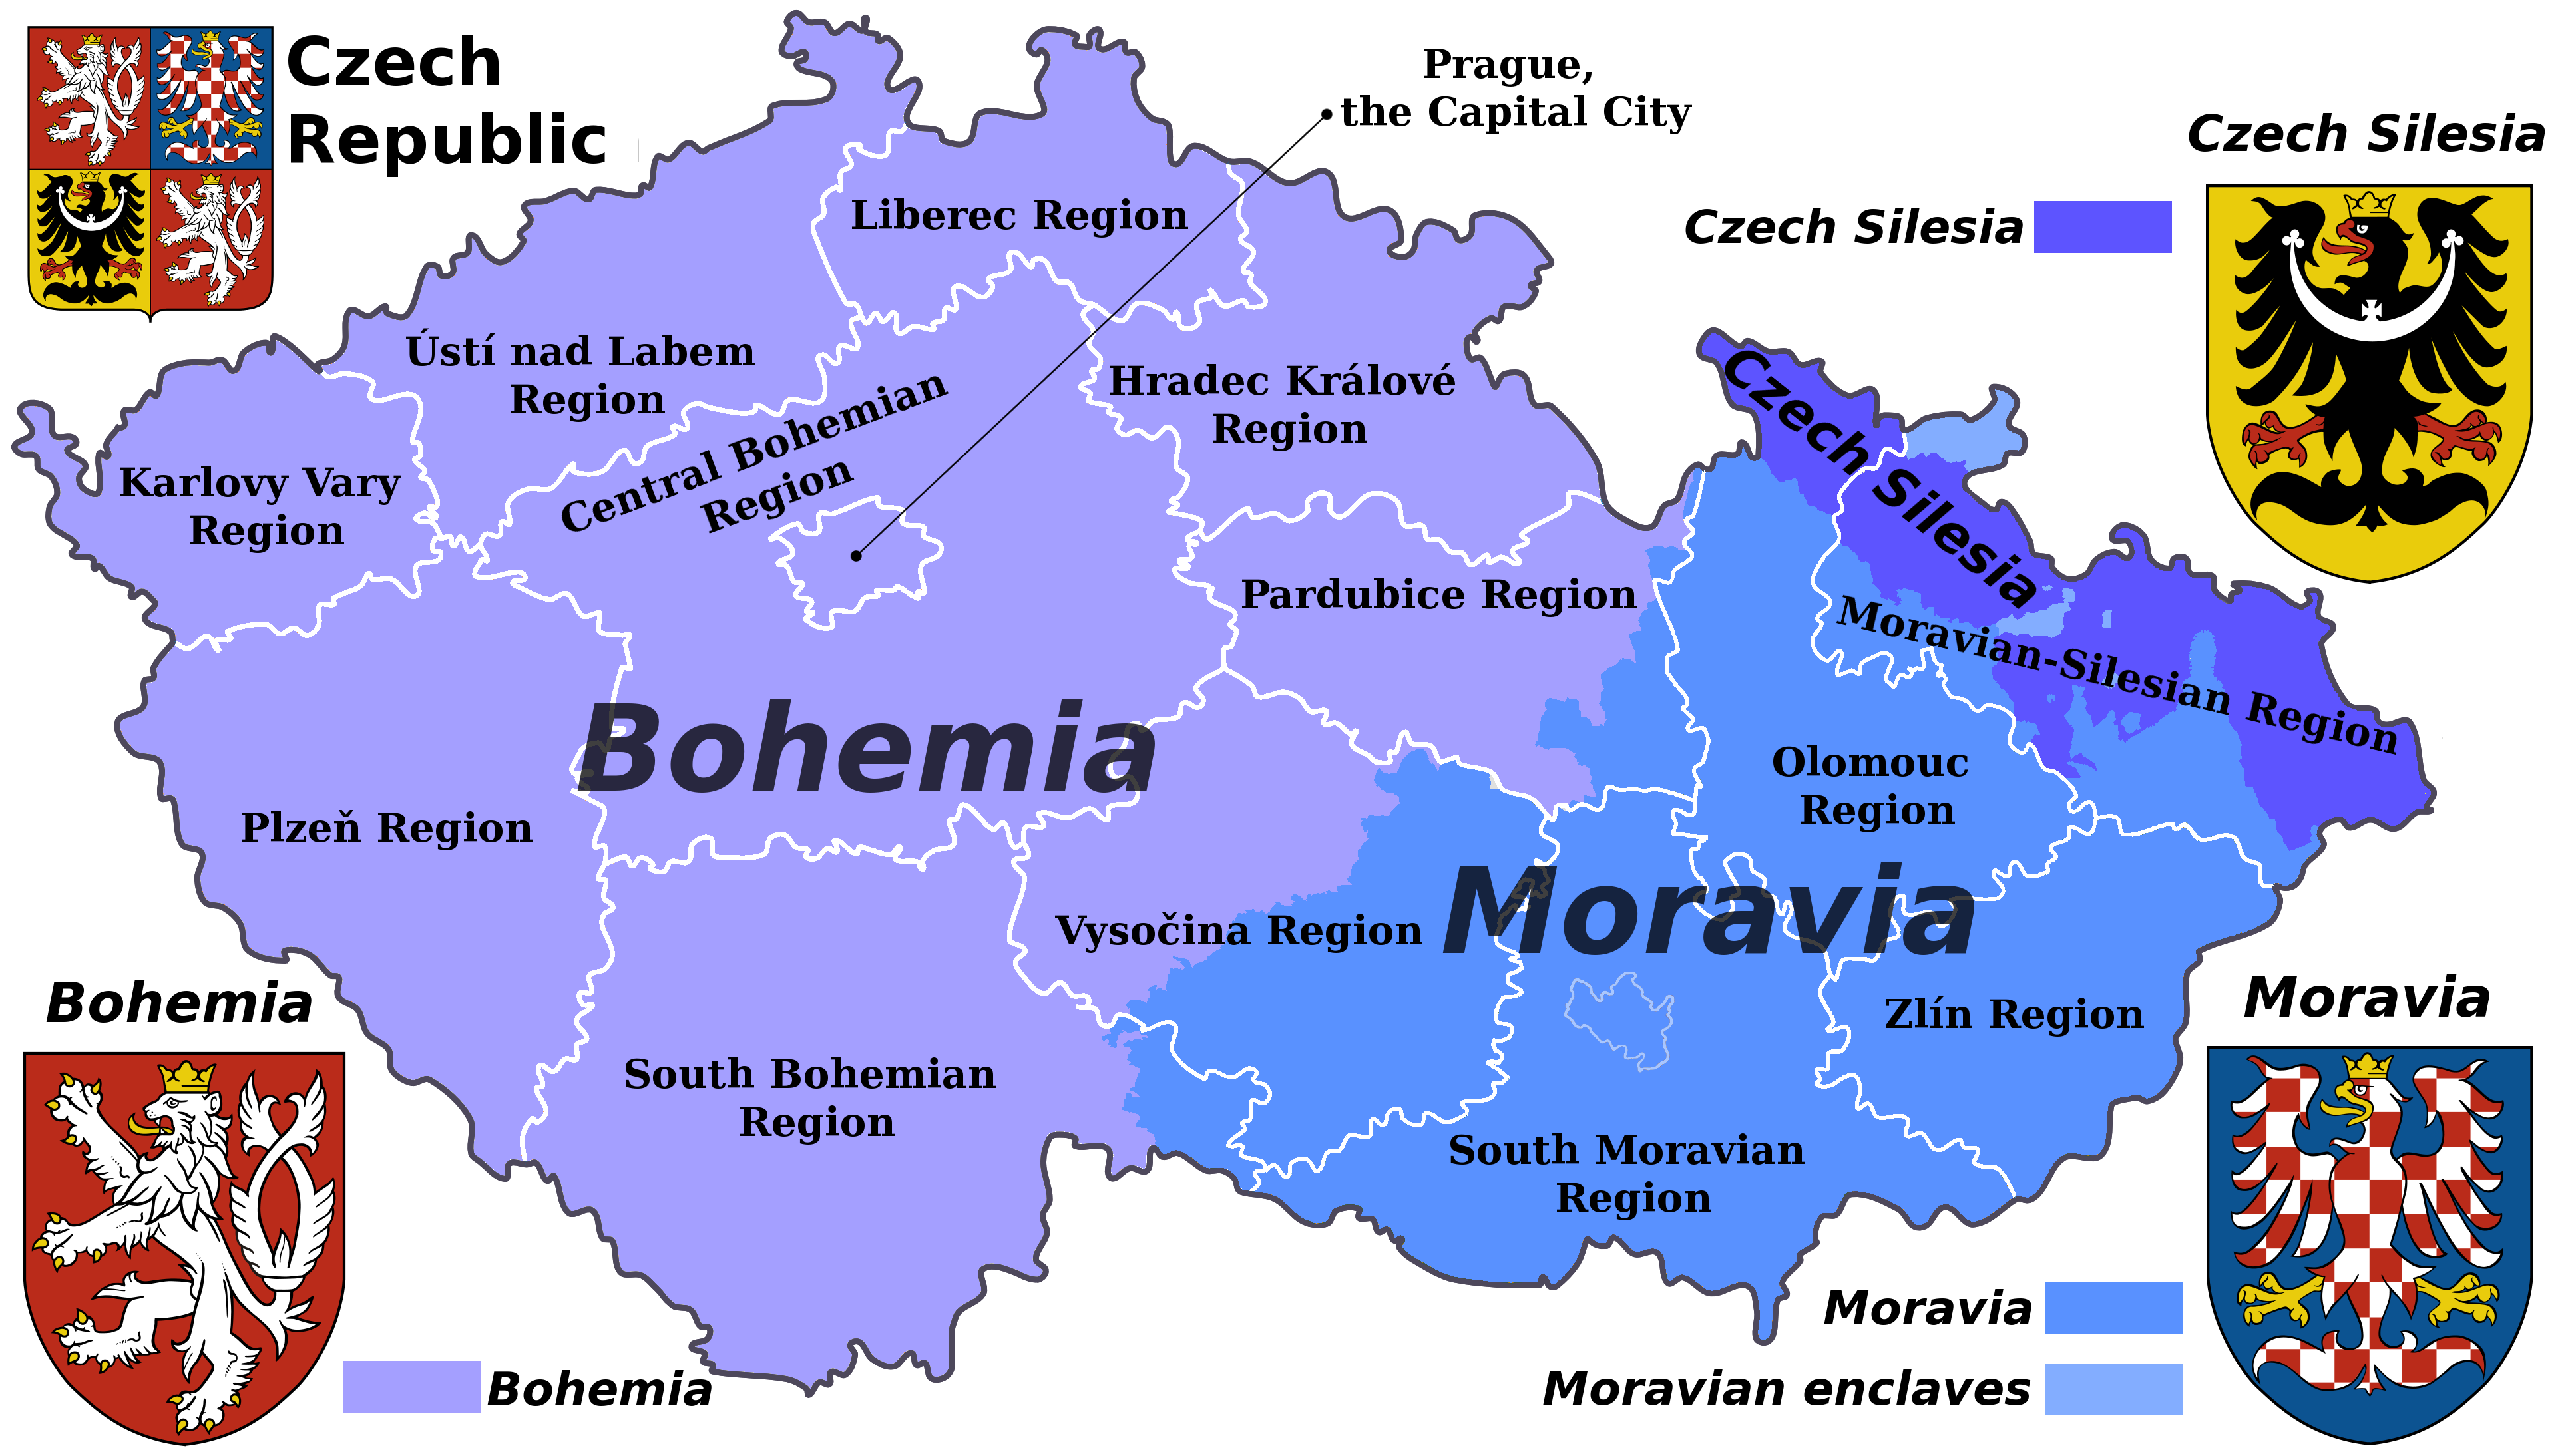 Czech lands - Wikipedia on china map, mexico map, spain map, moravia map, ireland map, england map, russia map, uganda map, ukraine map, norway map, europe map, burma map, the baltic states map, poland map, world map, italy map, chile map, france map, germany map, canada map,